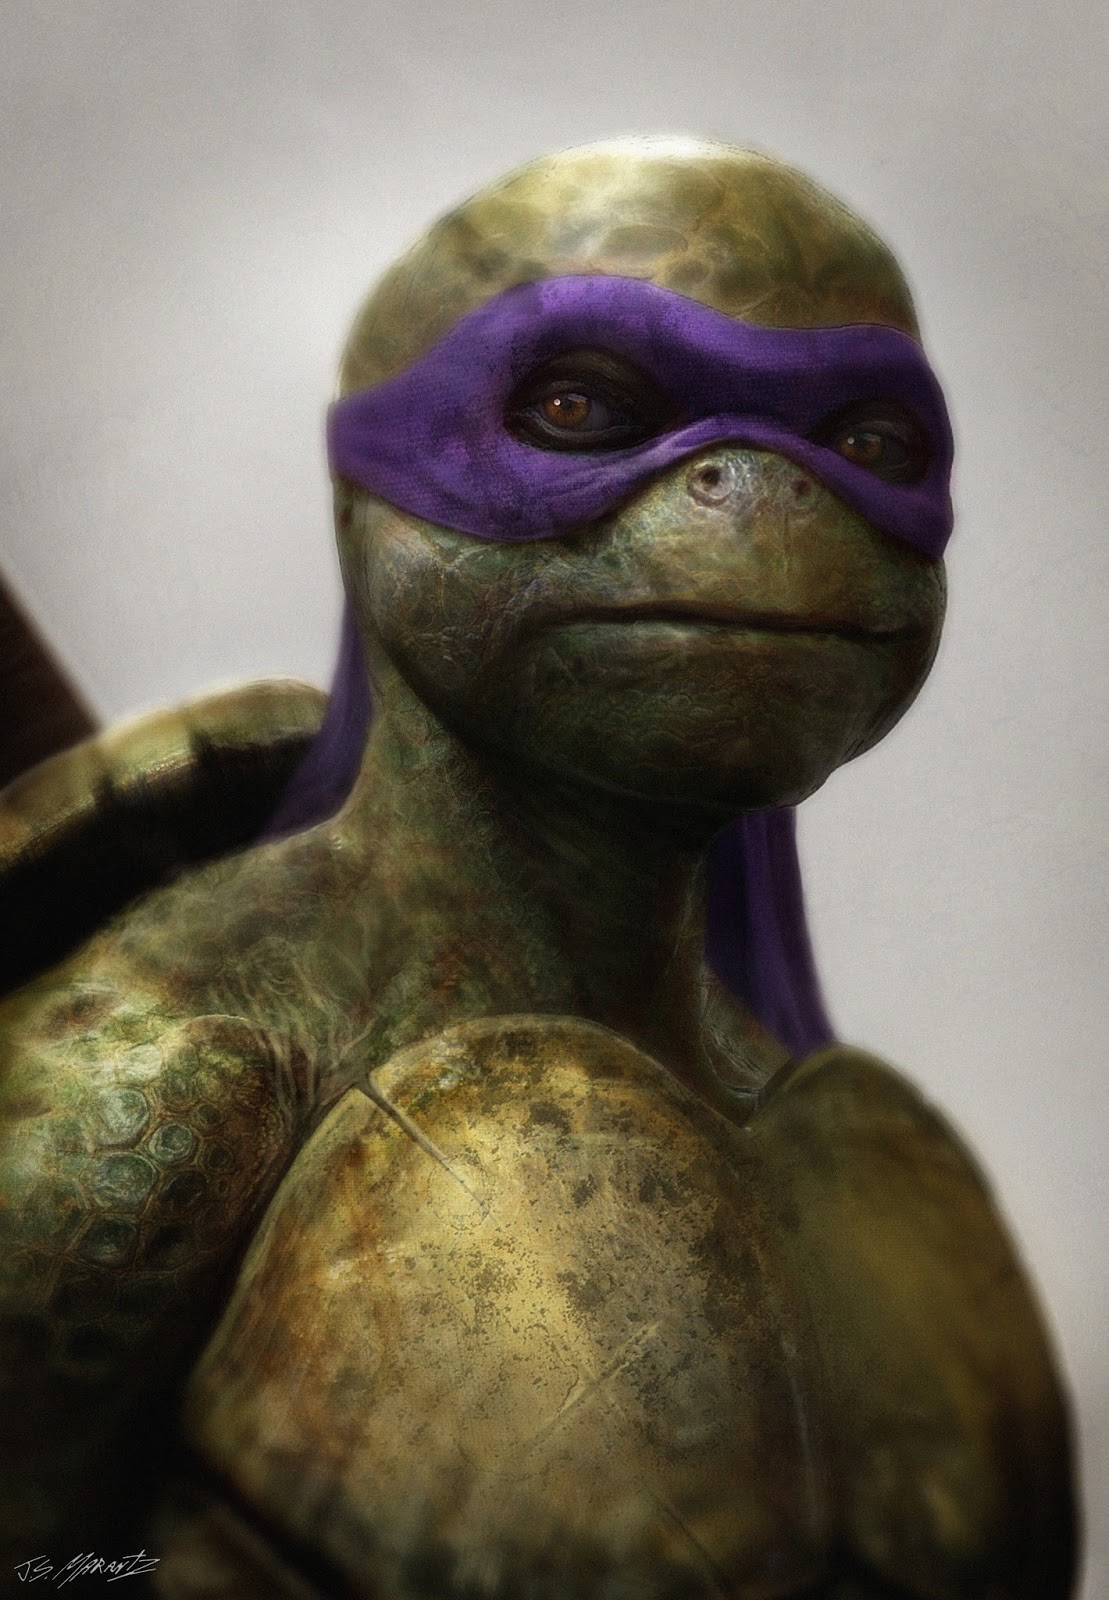 Teenage Mutant Ninja Turtles Concept Designs by Jerad Marantz